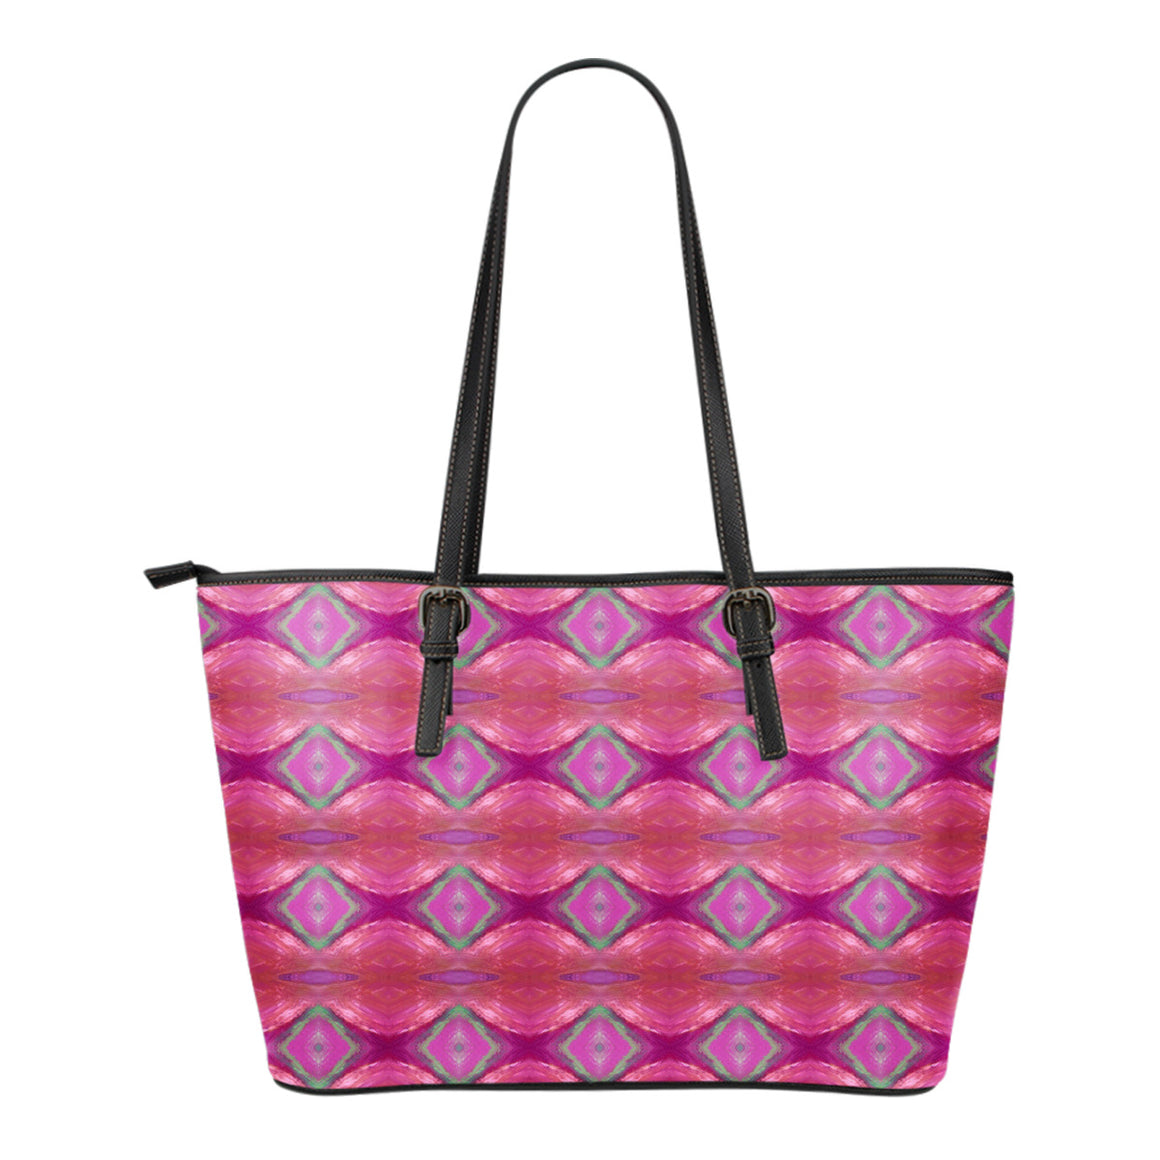 Paradise Pink Small Leather Tote